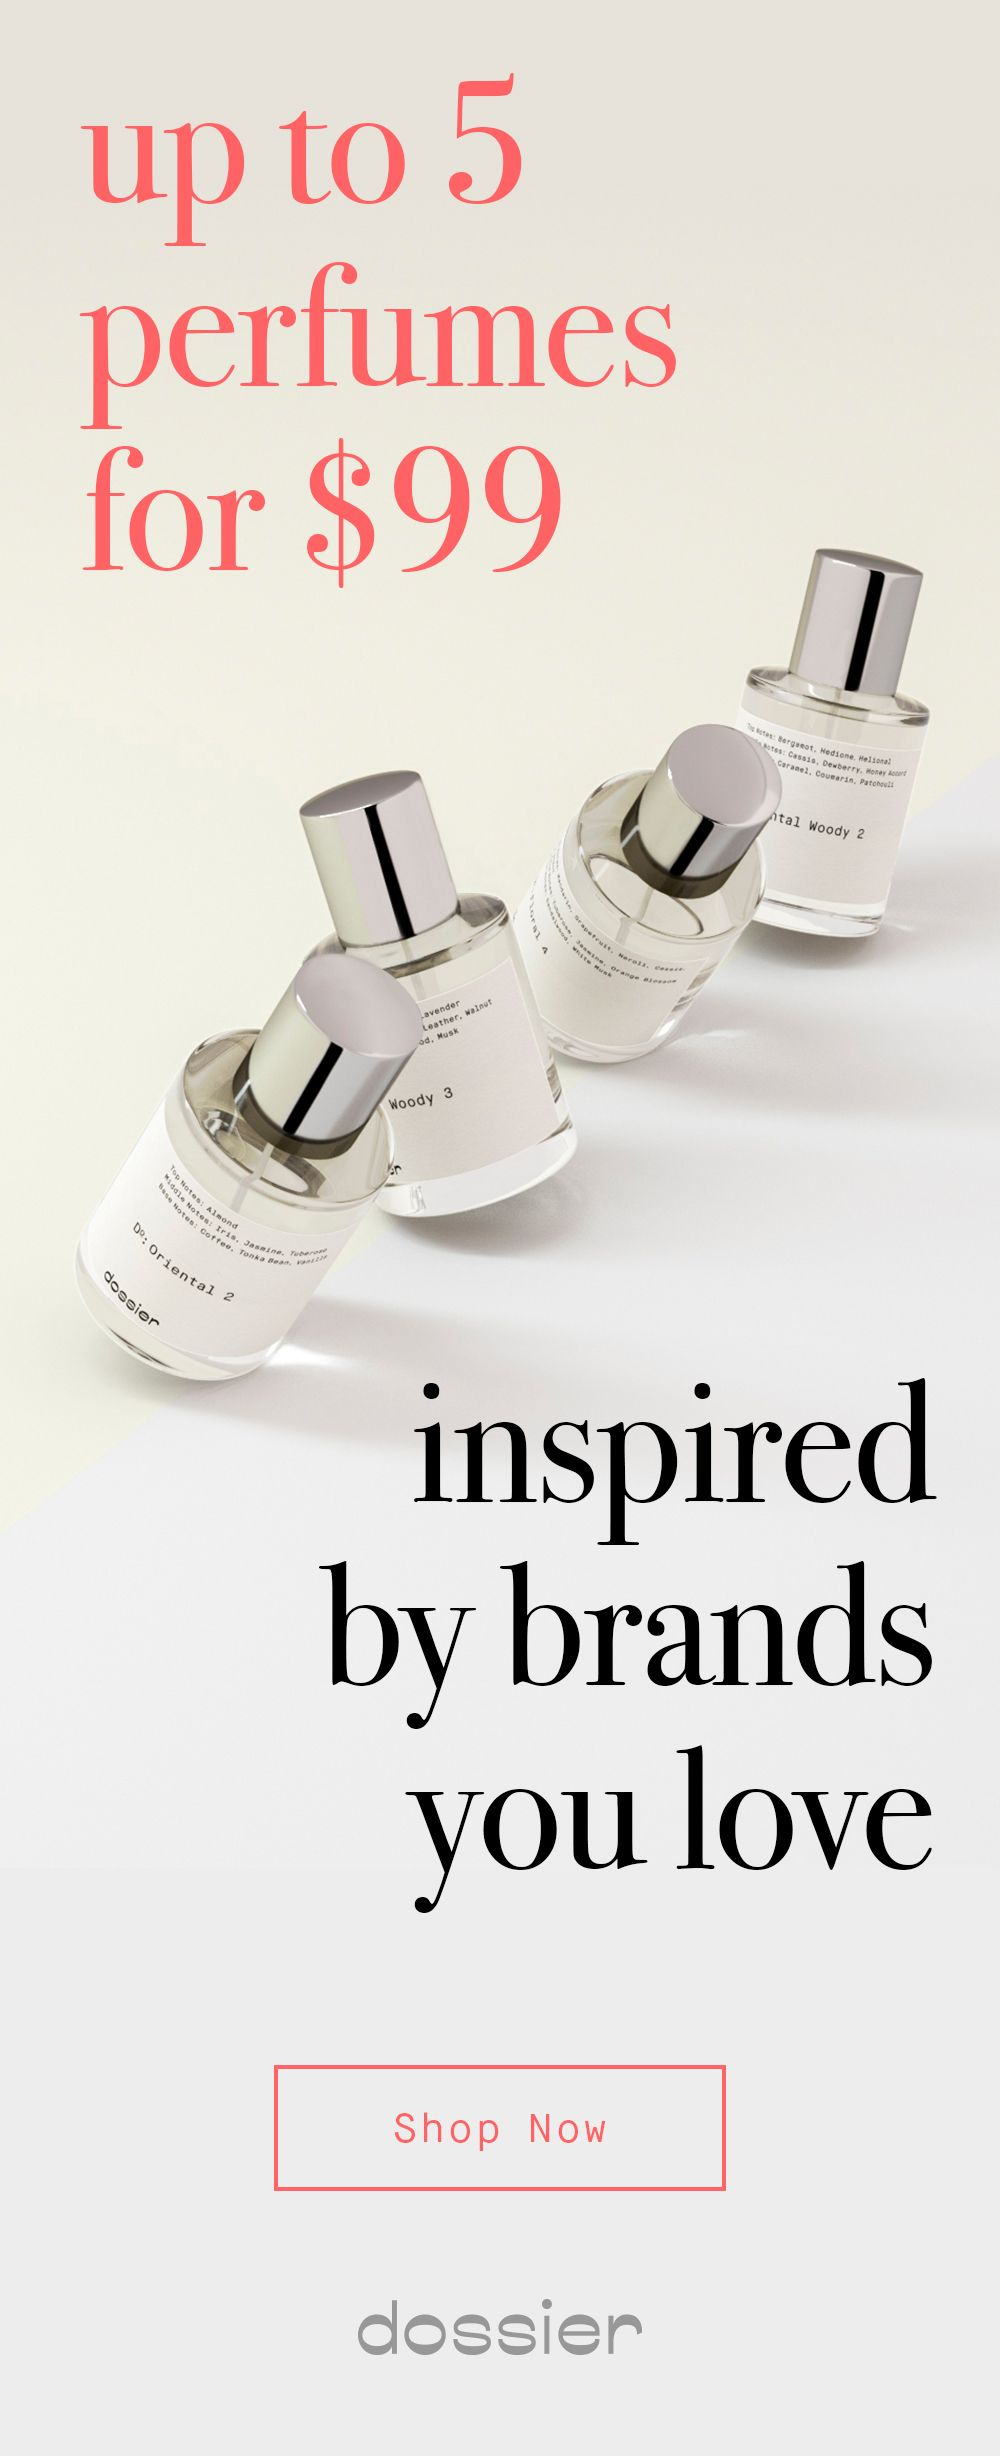 Dossier is your goto destination for scents that have the